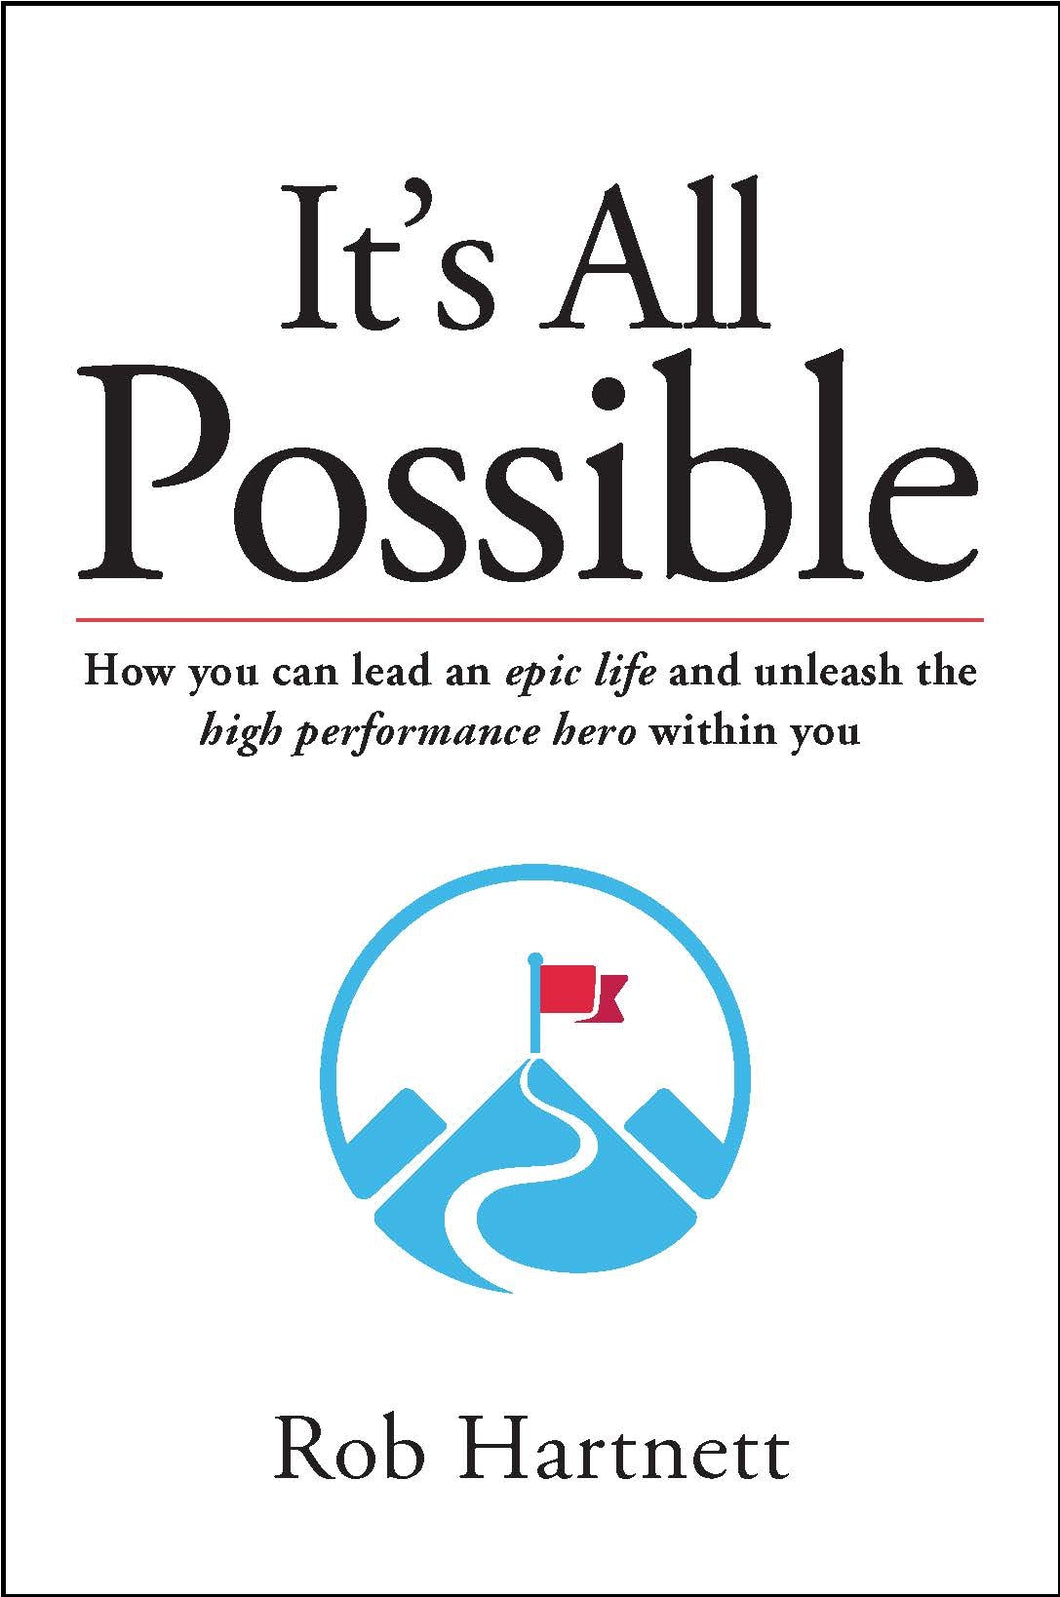 The business book cover of It's All Possible by Rob Hartnett